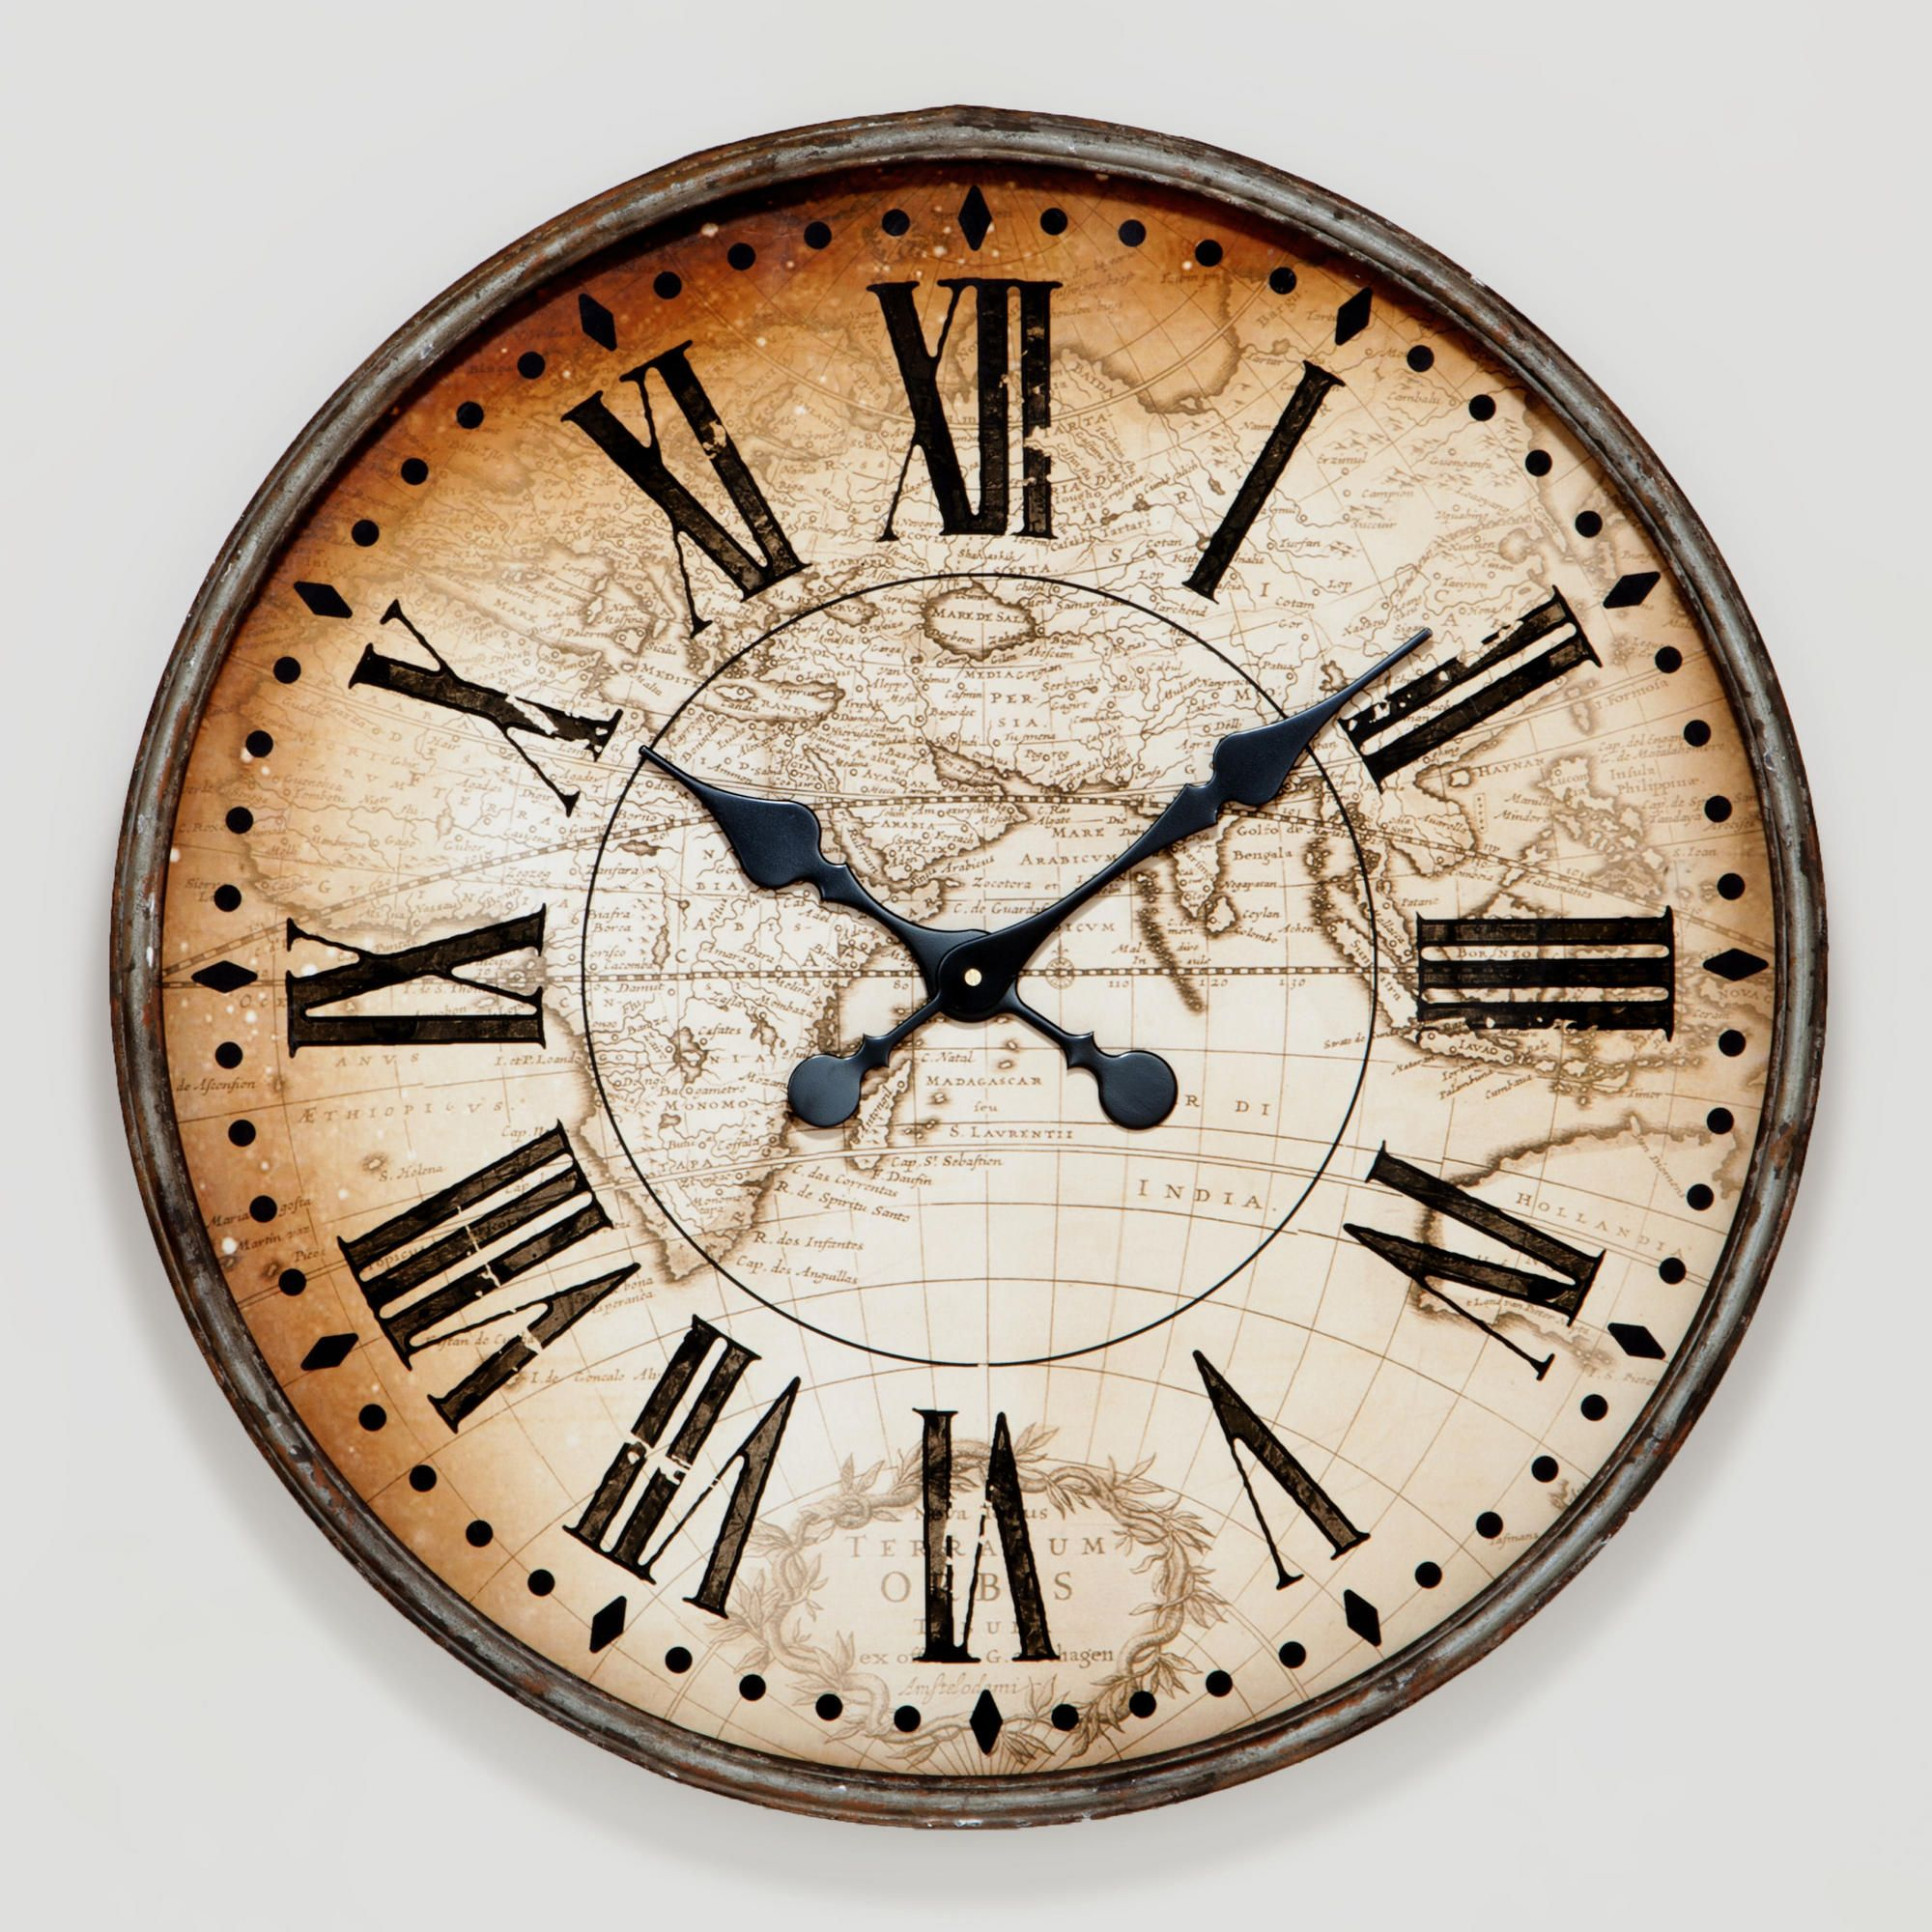 World clock world market a clock and a map brilliant i love world clock world market a clock and a map brilliant gumiabroncs Images